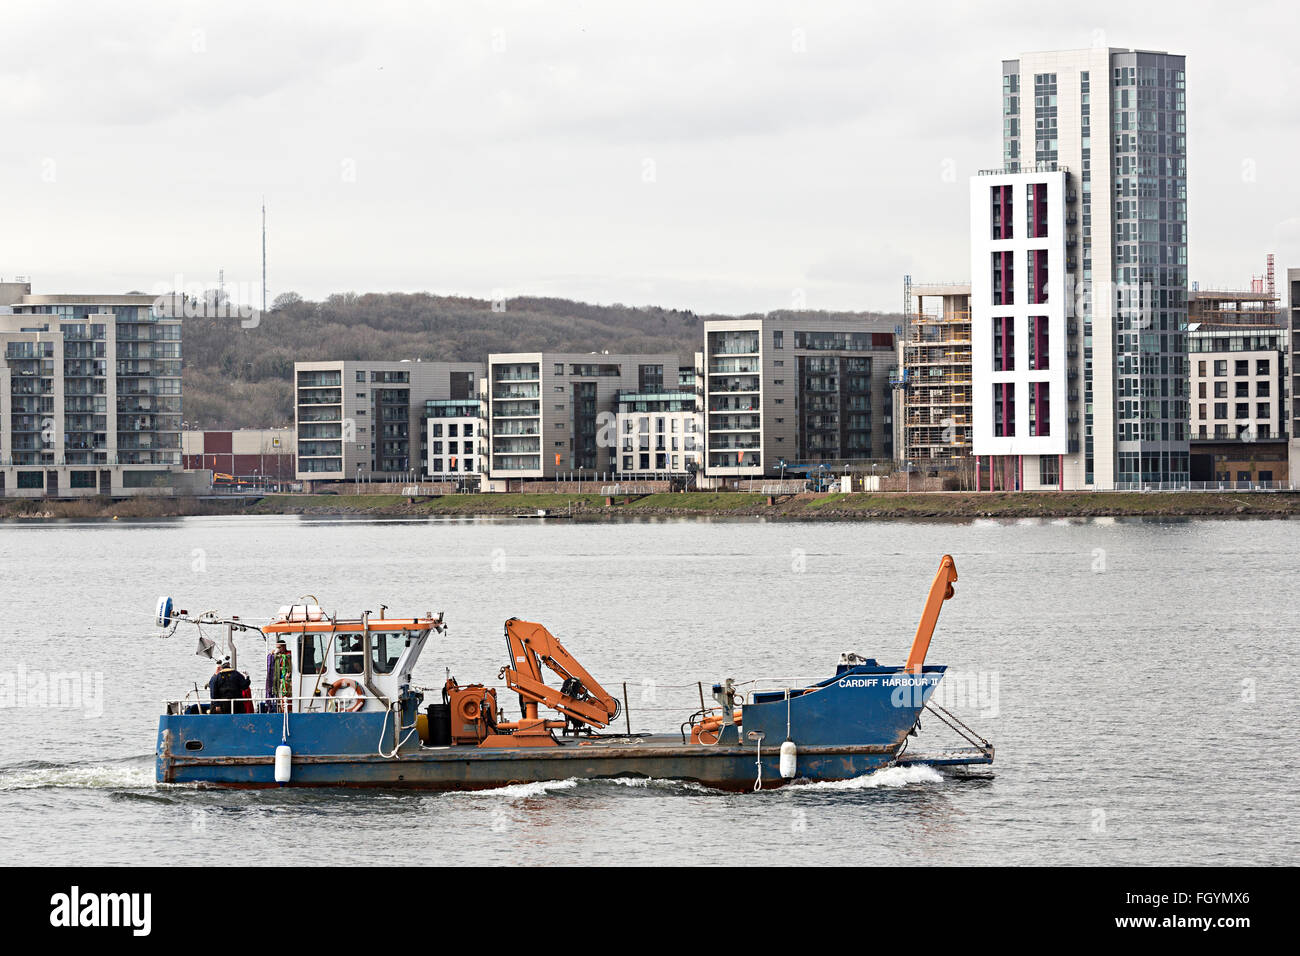 Cardiff Harbour II dredging and maintenance boat, Cardiff Bay, Wales, UK - Stock Image